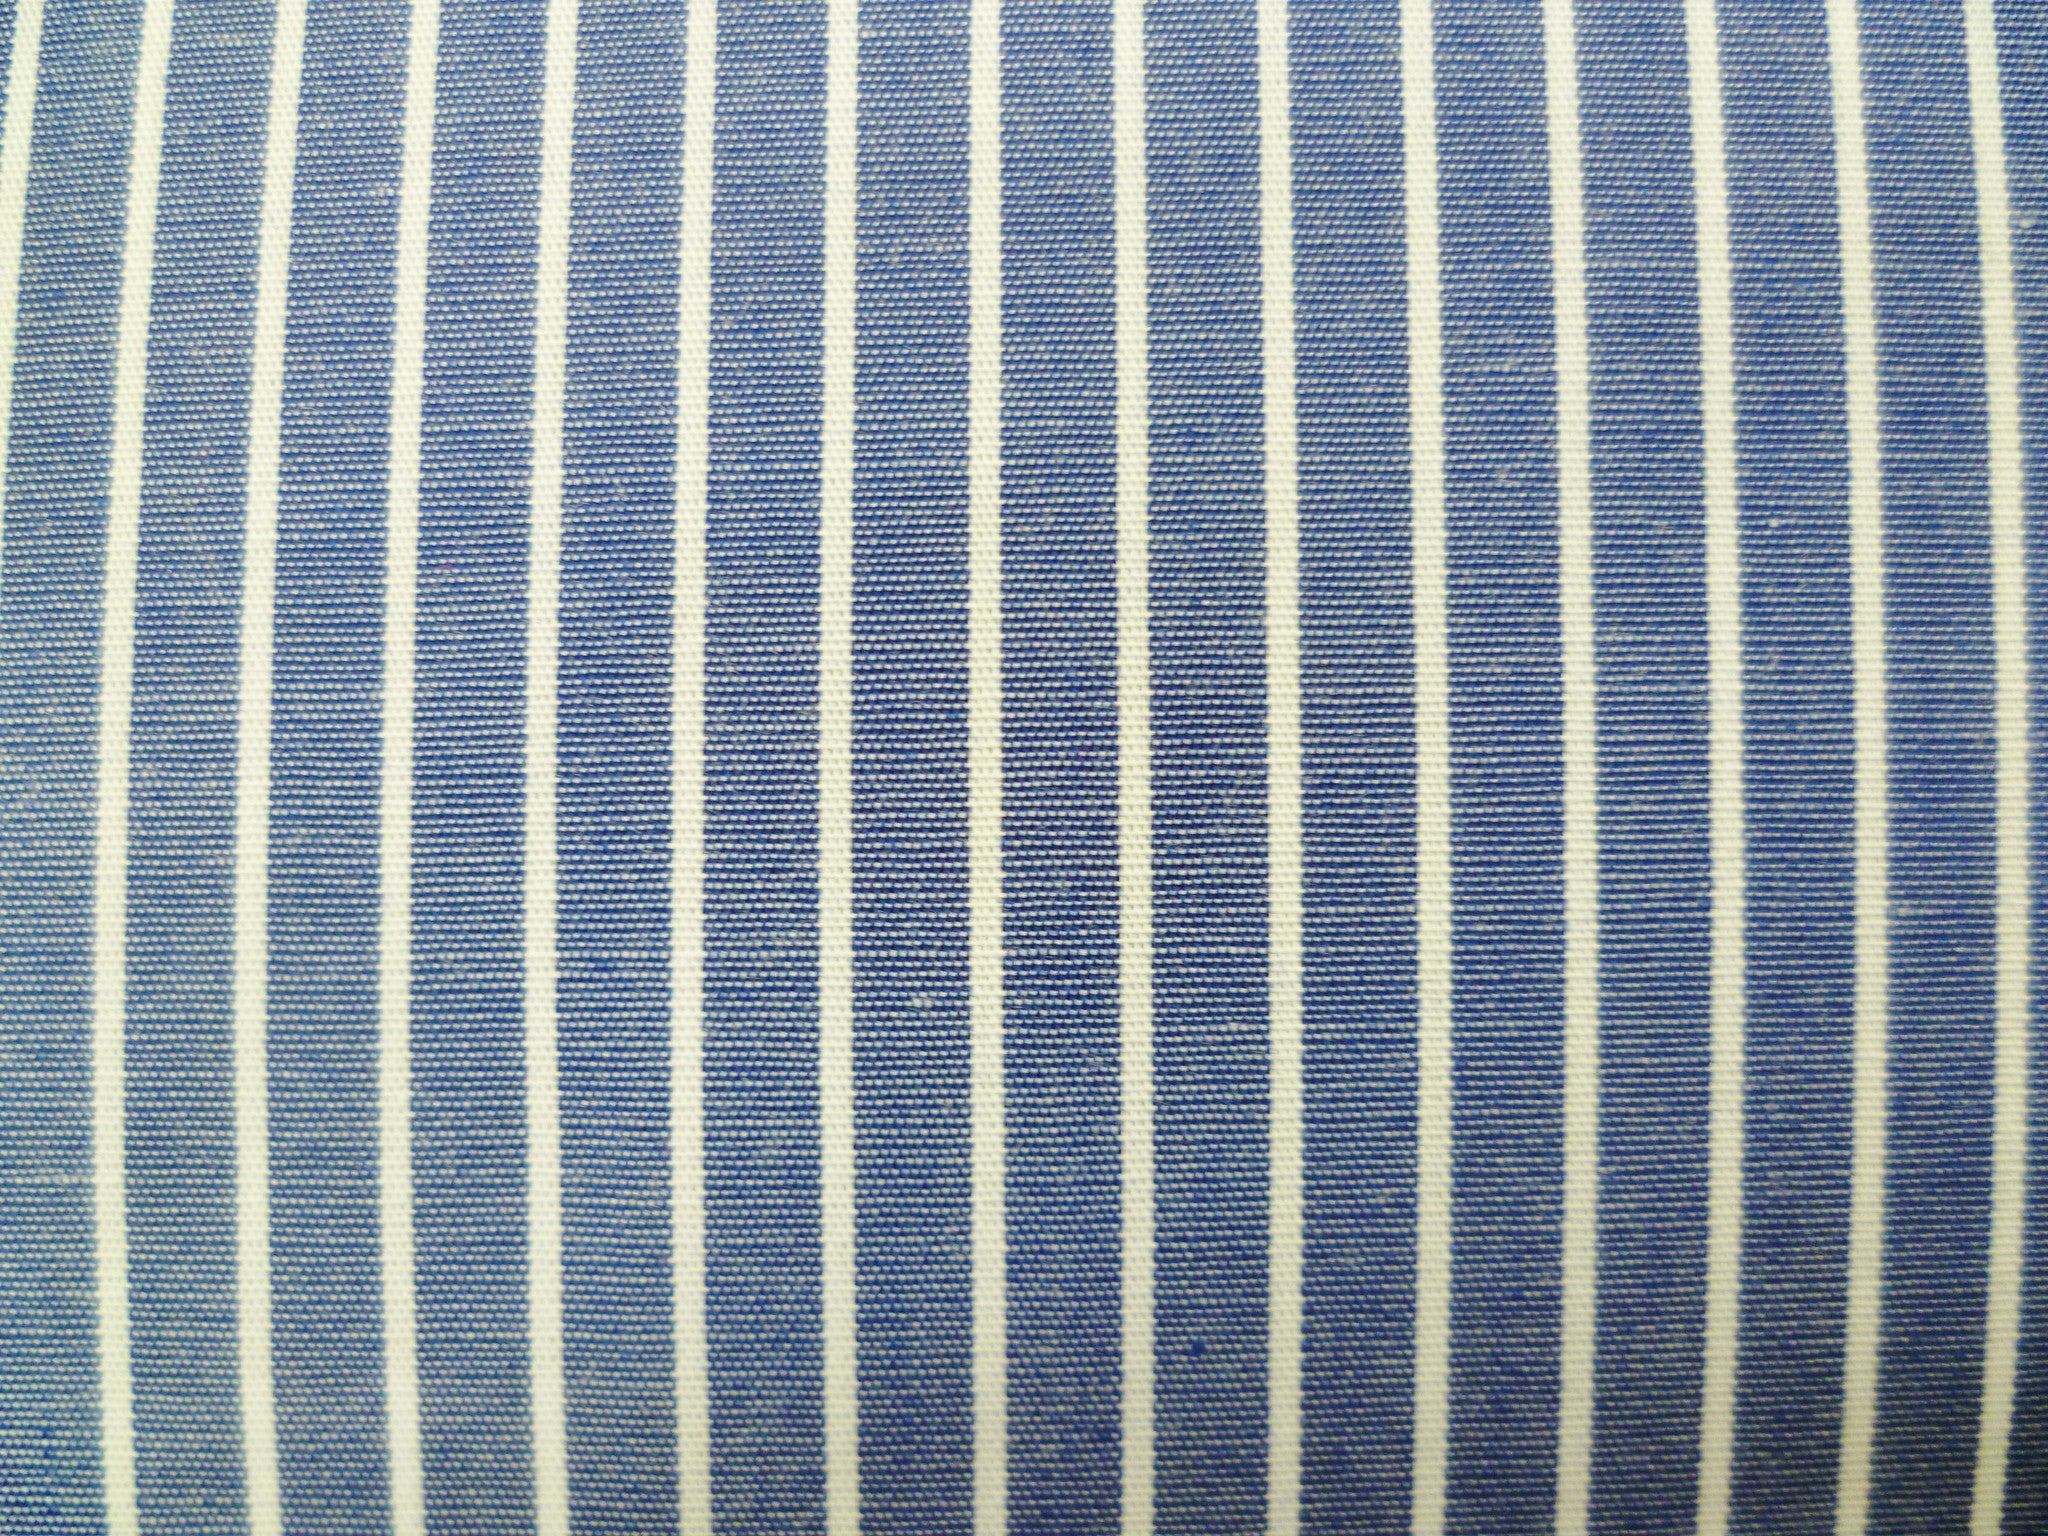 White and Bright Navy Striped Cotton